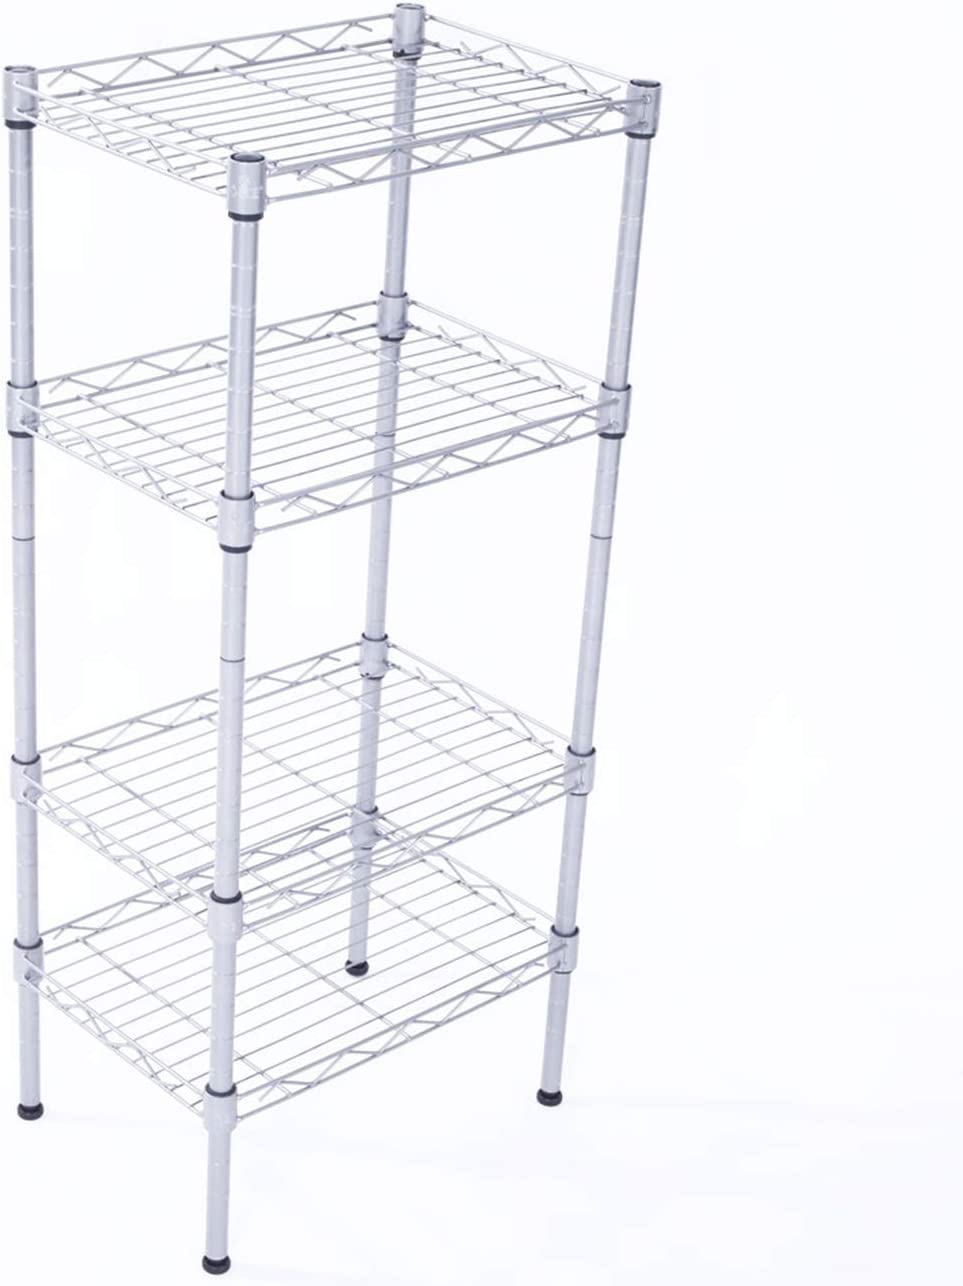 Furniture Home Furnishing Plaza NEW before selling ☆ Rectangle 5 ☆ popular Steel Ass Carbon Metal